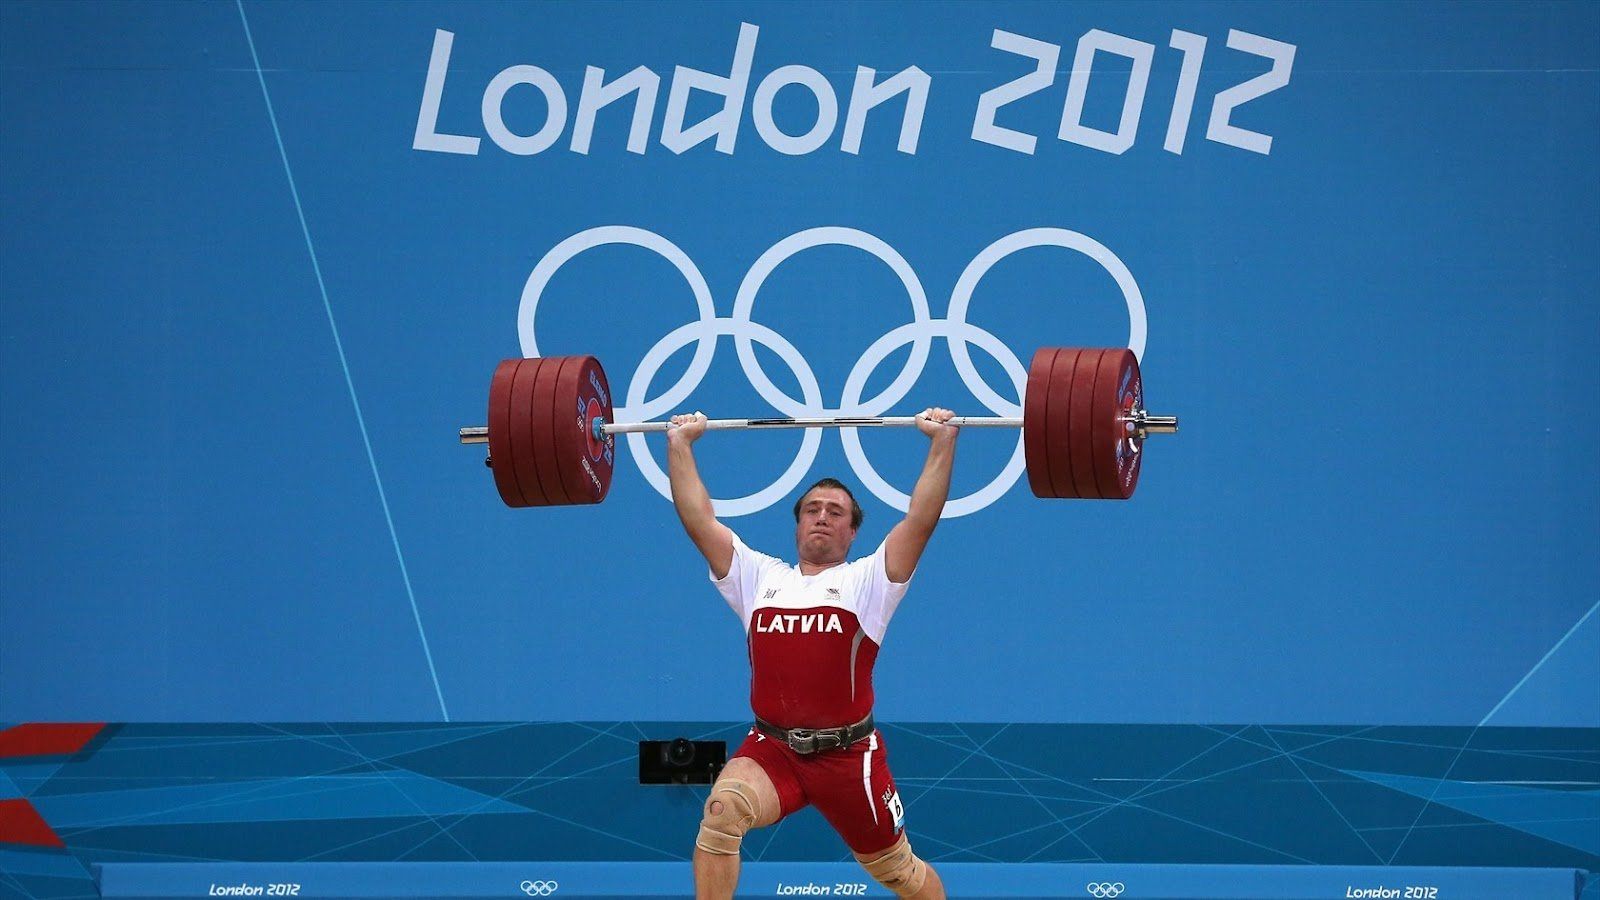 Olympic Lifting Wallpaper Of Weightlifting 1600x900